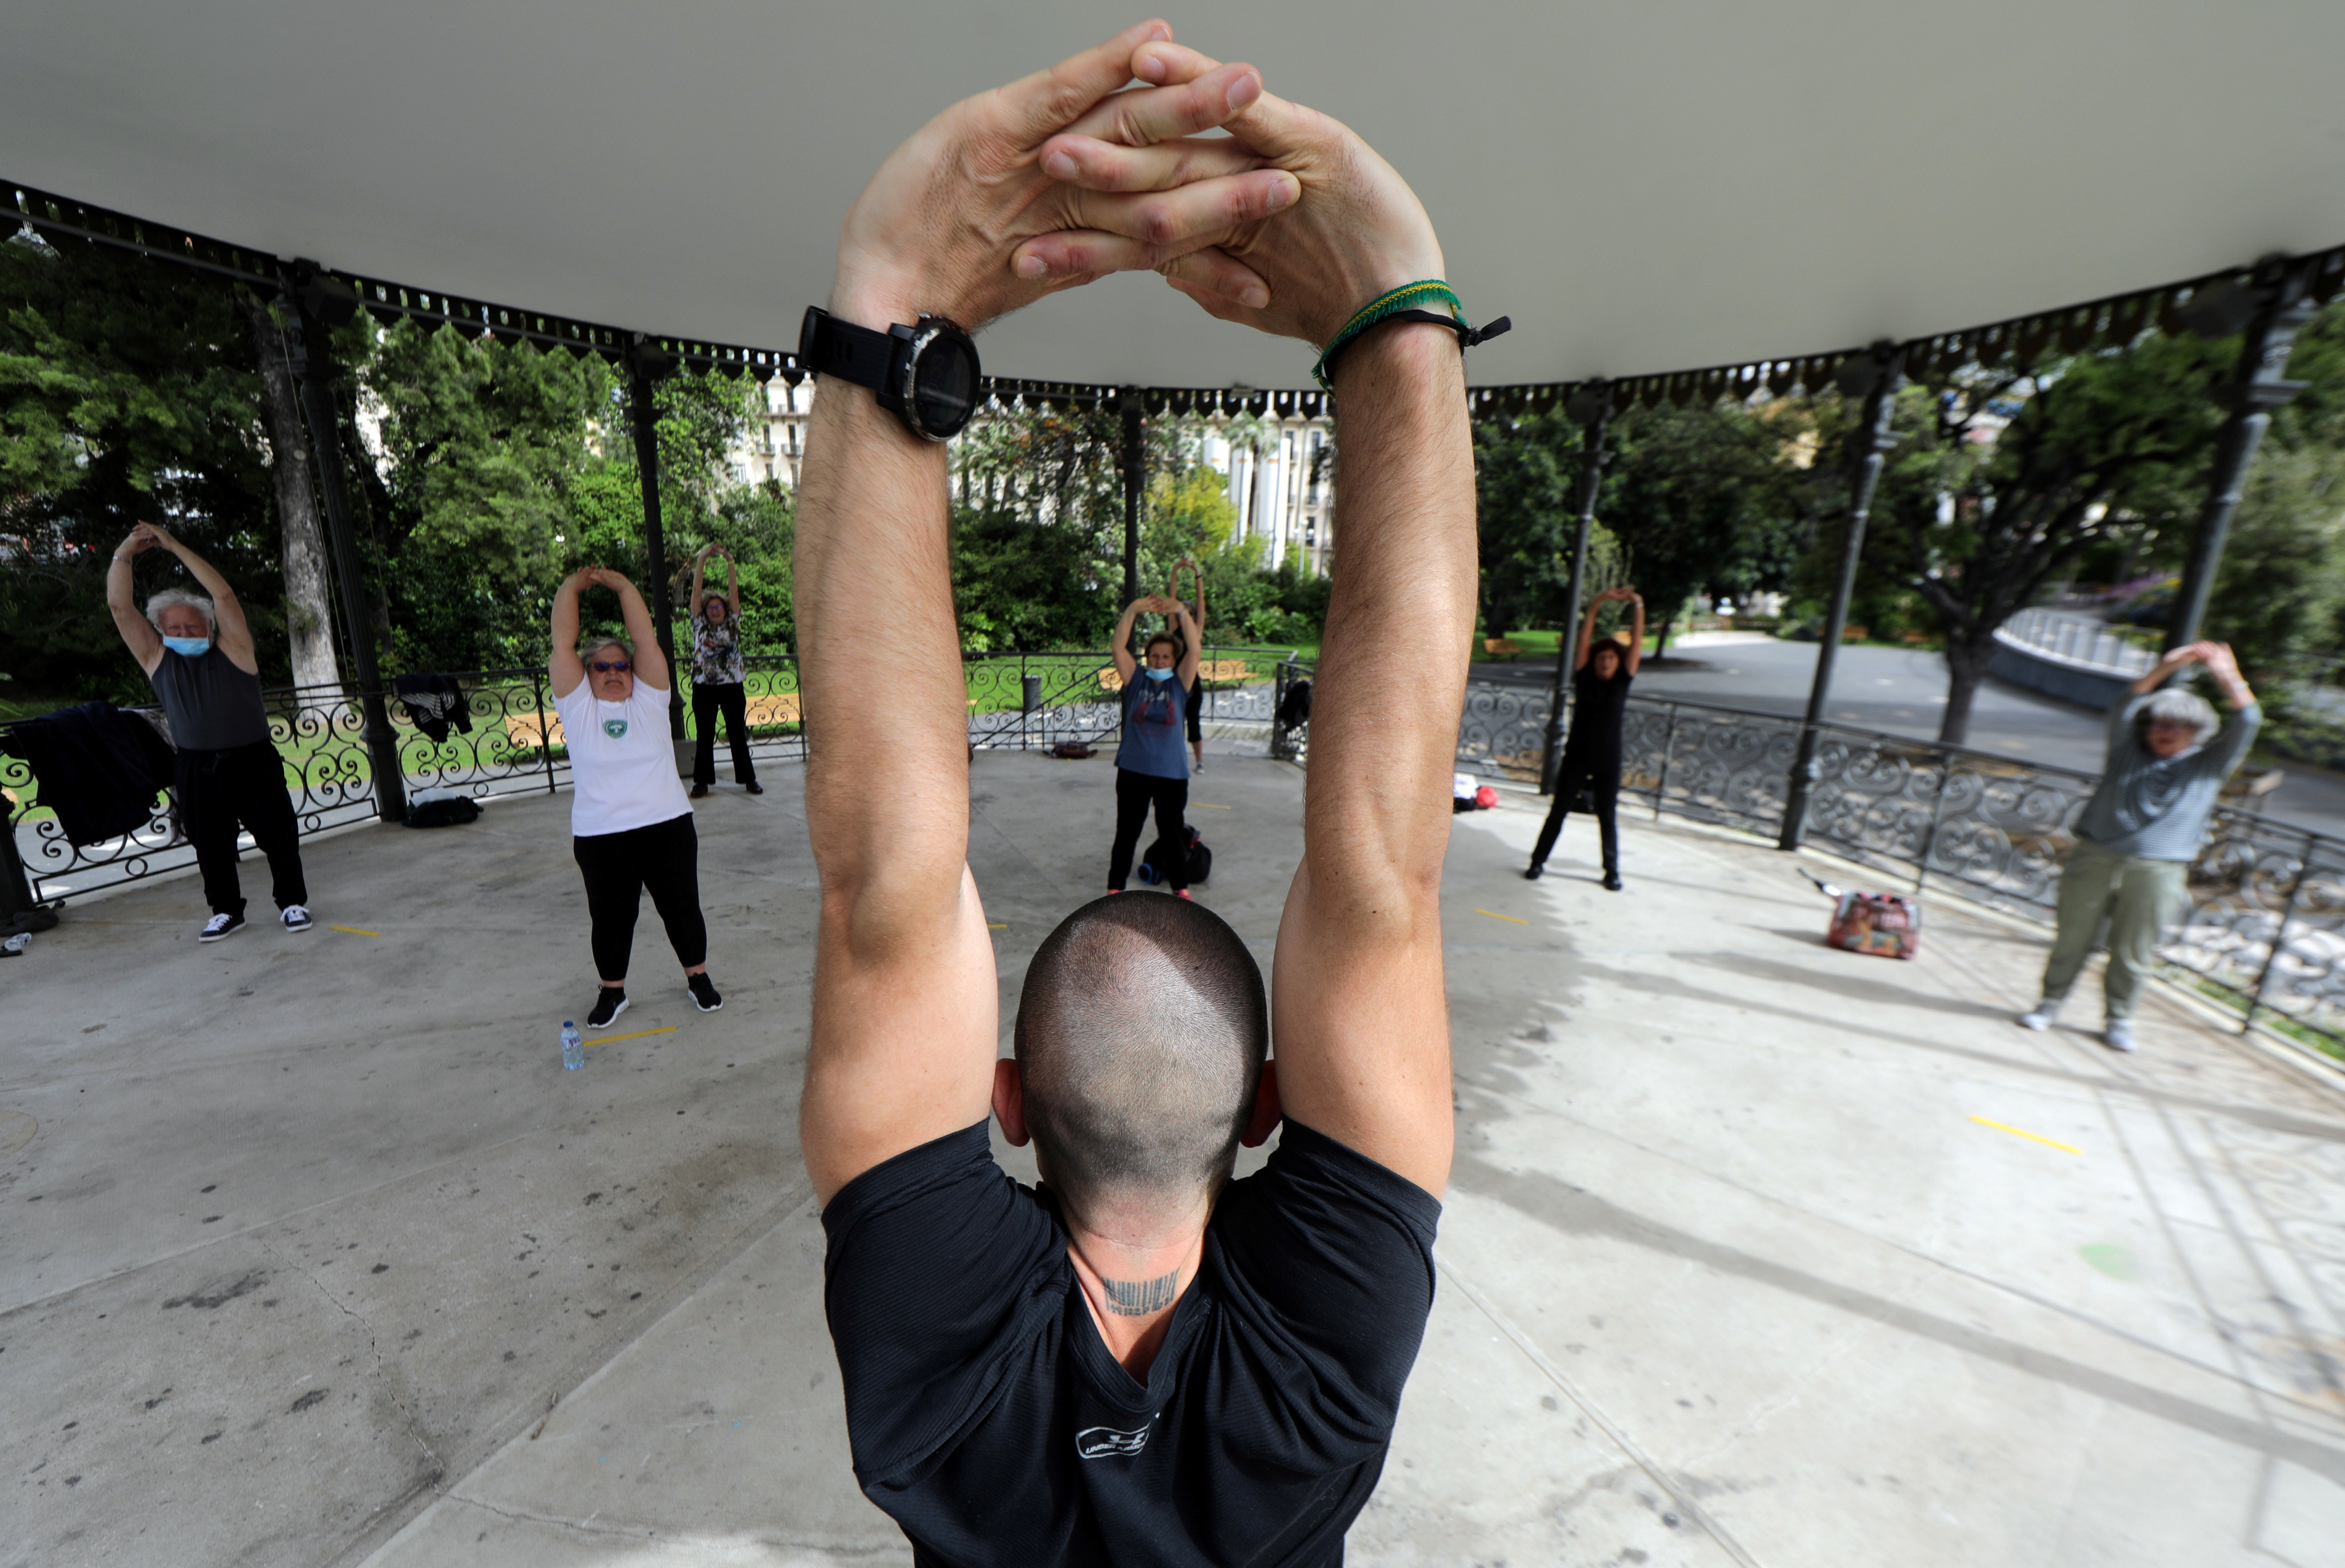 A group of elderly people practice exercise with social distancing in the bandstand of Albert 1er public garden in Nice as France softens its strict lockdown rules during the outbreak of the coronavirus disease (COVID-19) in France, May 13, 2020.   REUTERS/Eric Gaillard - RC2MNG985R7O